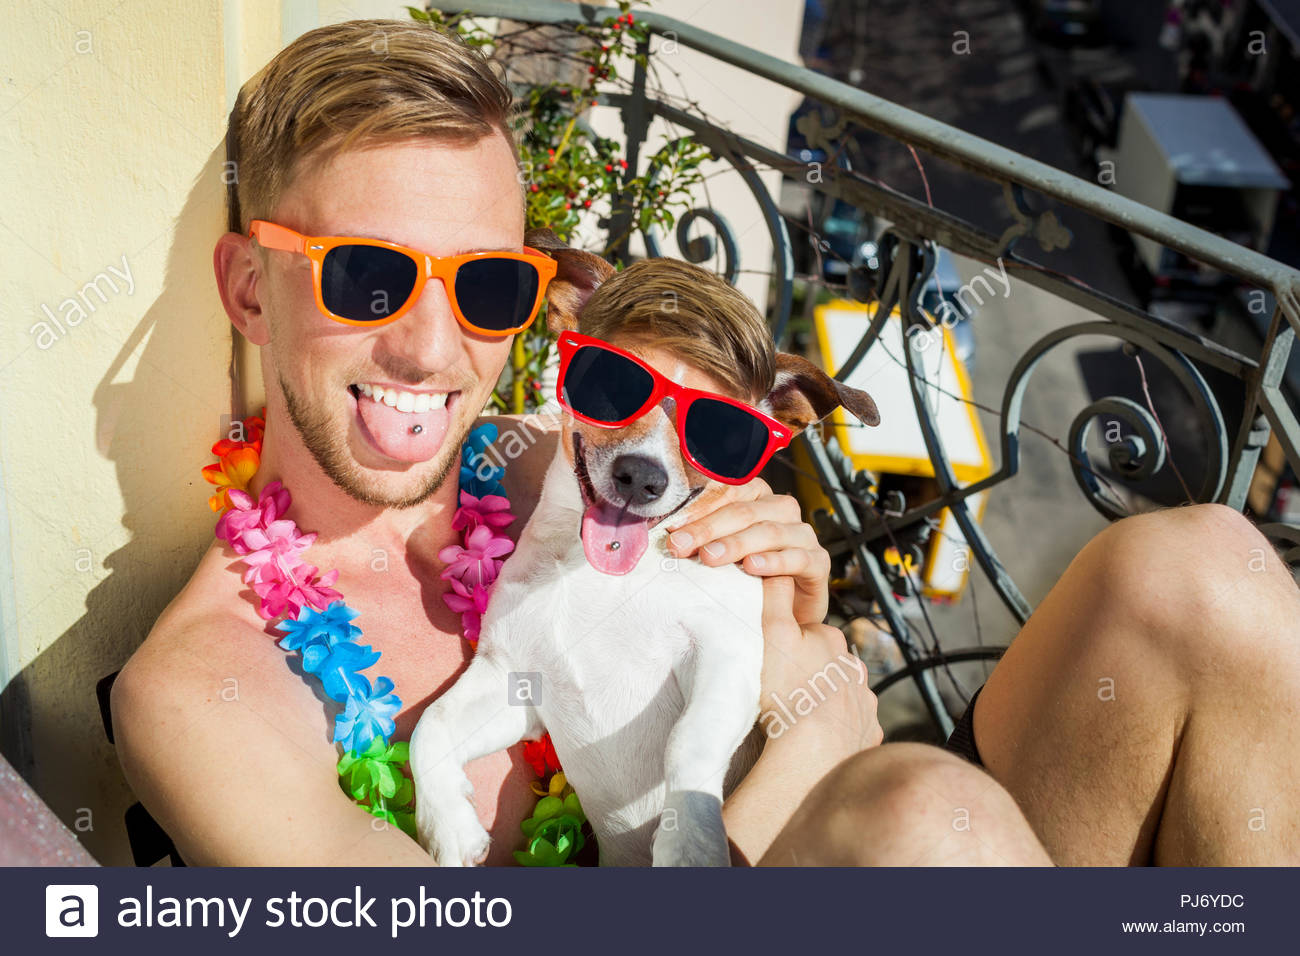 ack russell dog and owner having a siesta under the sun ,sun tanning with sunglasses, close and cozy together in love - Stock Image